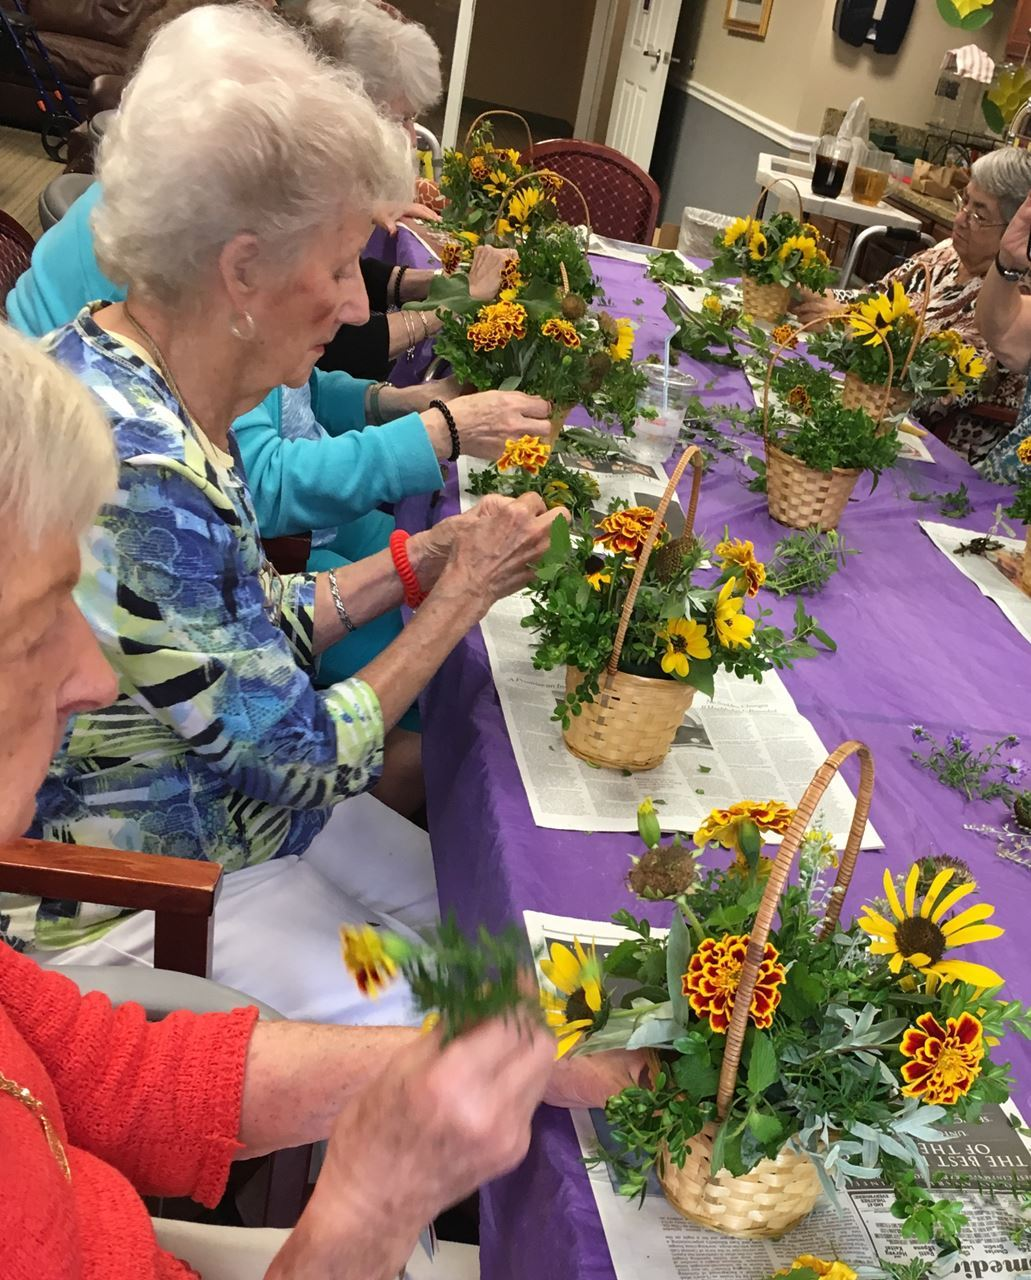 Senior citizens in a horticulture therapy session making fresh flower arrangements.